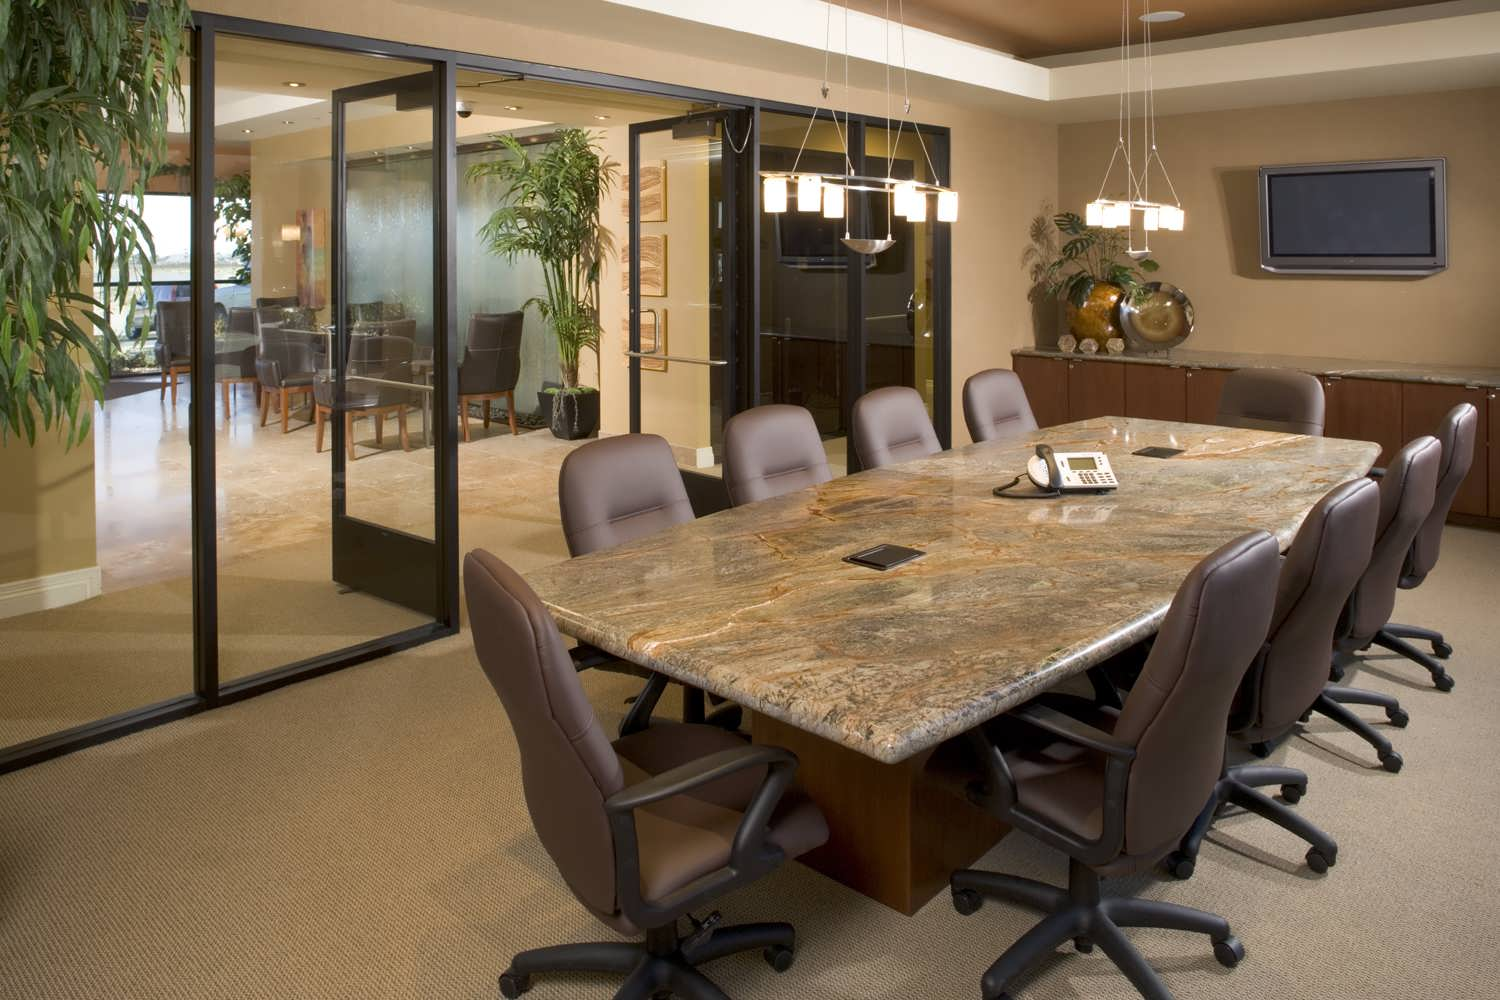 image professional office. Meeting Room Image Professional Office